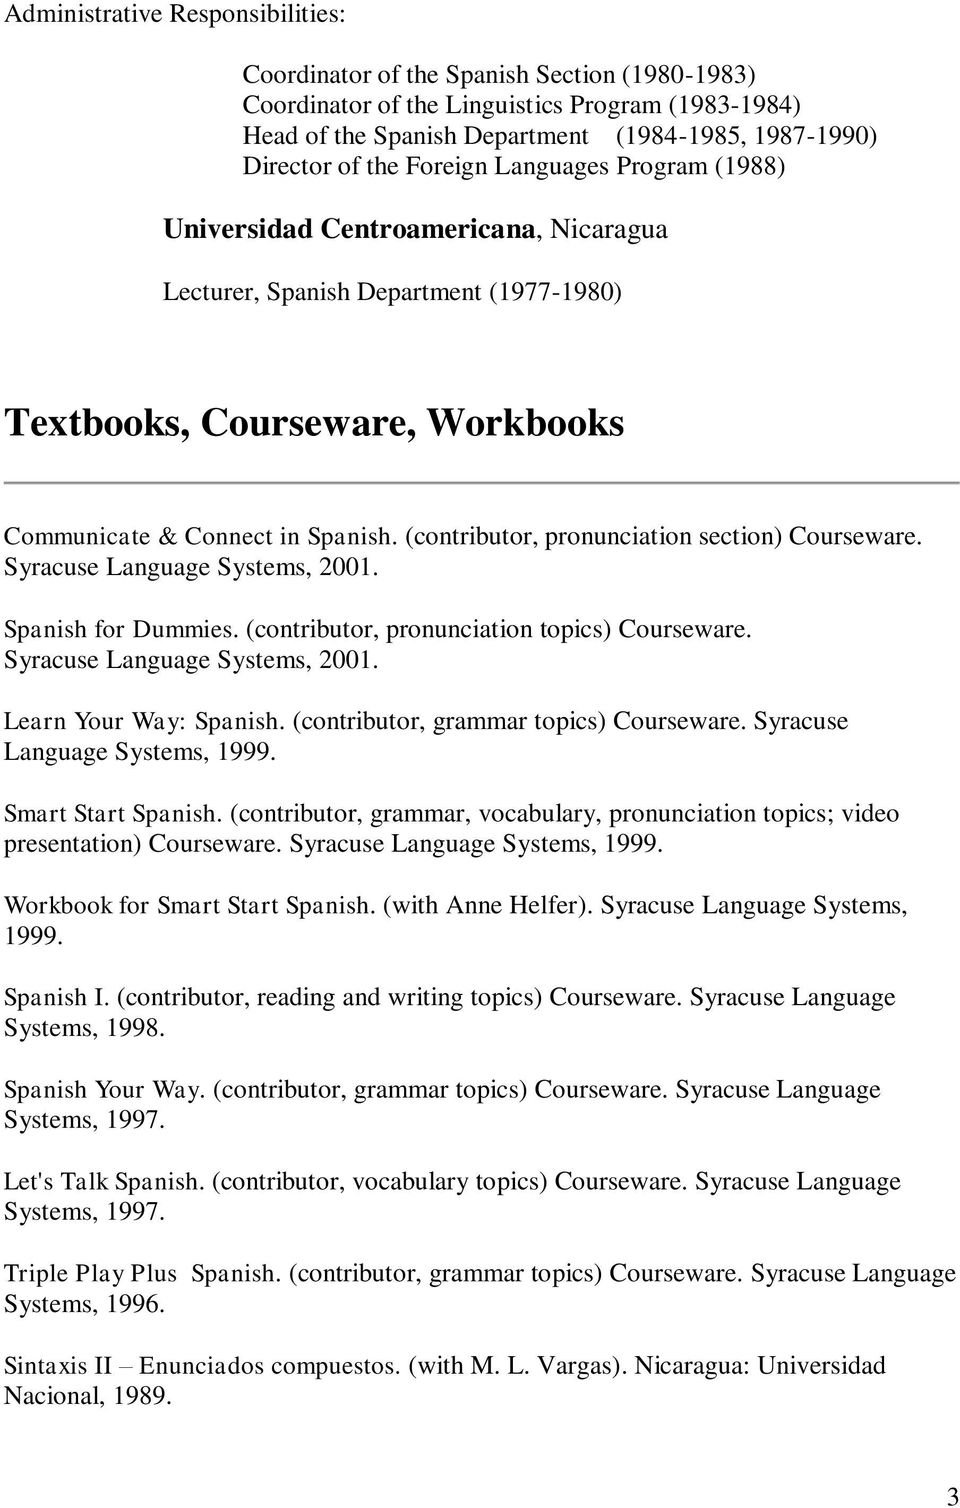 (contributor, pronunciation section) Courseware. Syracuse Language Systems, 2001. Spanish for Dummies. (contributor, pronunciation topics) Courseware. Syracuse Language Systems, 2001. Learn Your Way: Spanish.